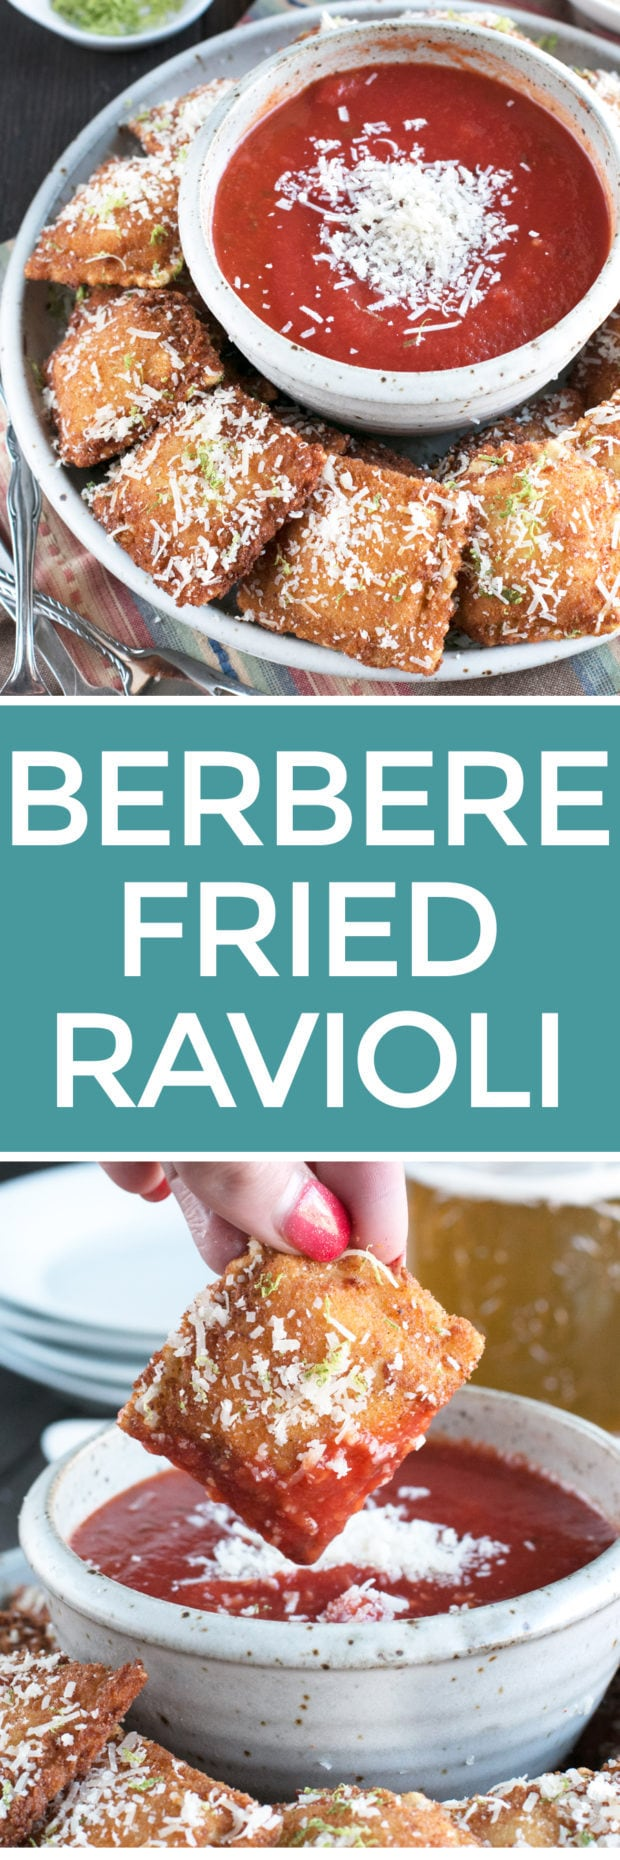 Berbere Fried Ravioli